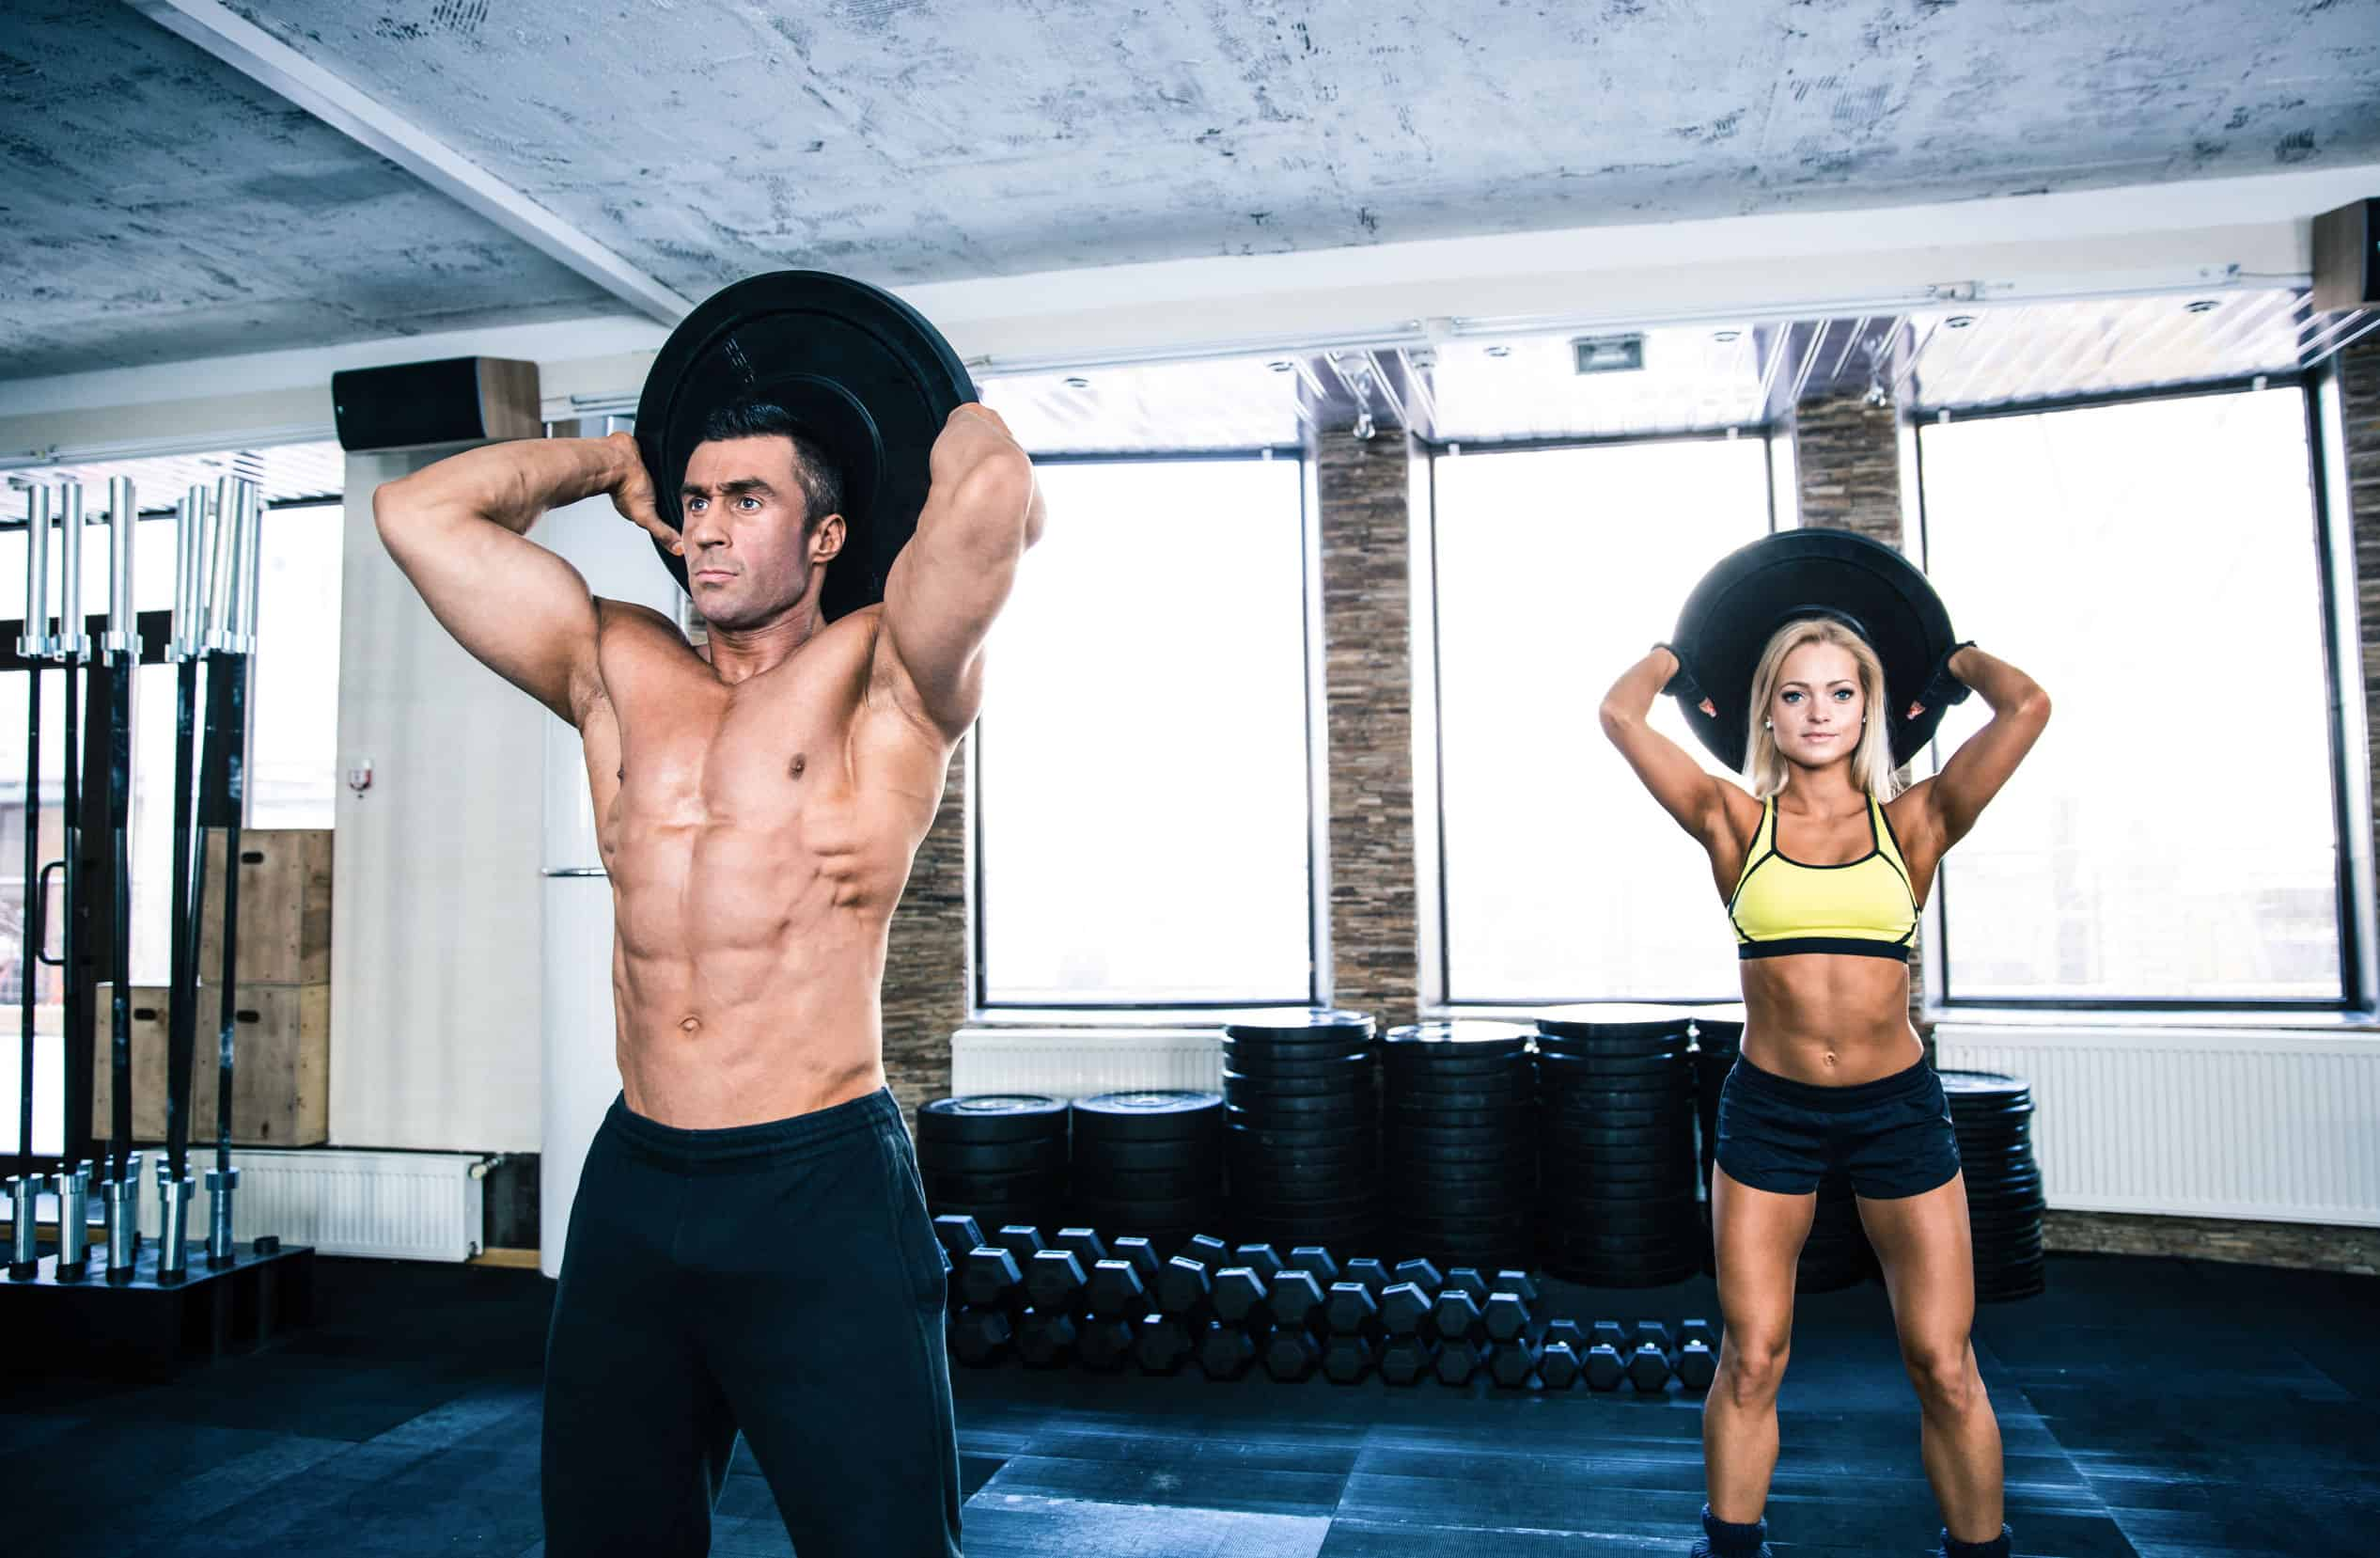 38794392 - muscular man and fit woman workout at crossfit gym